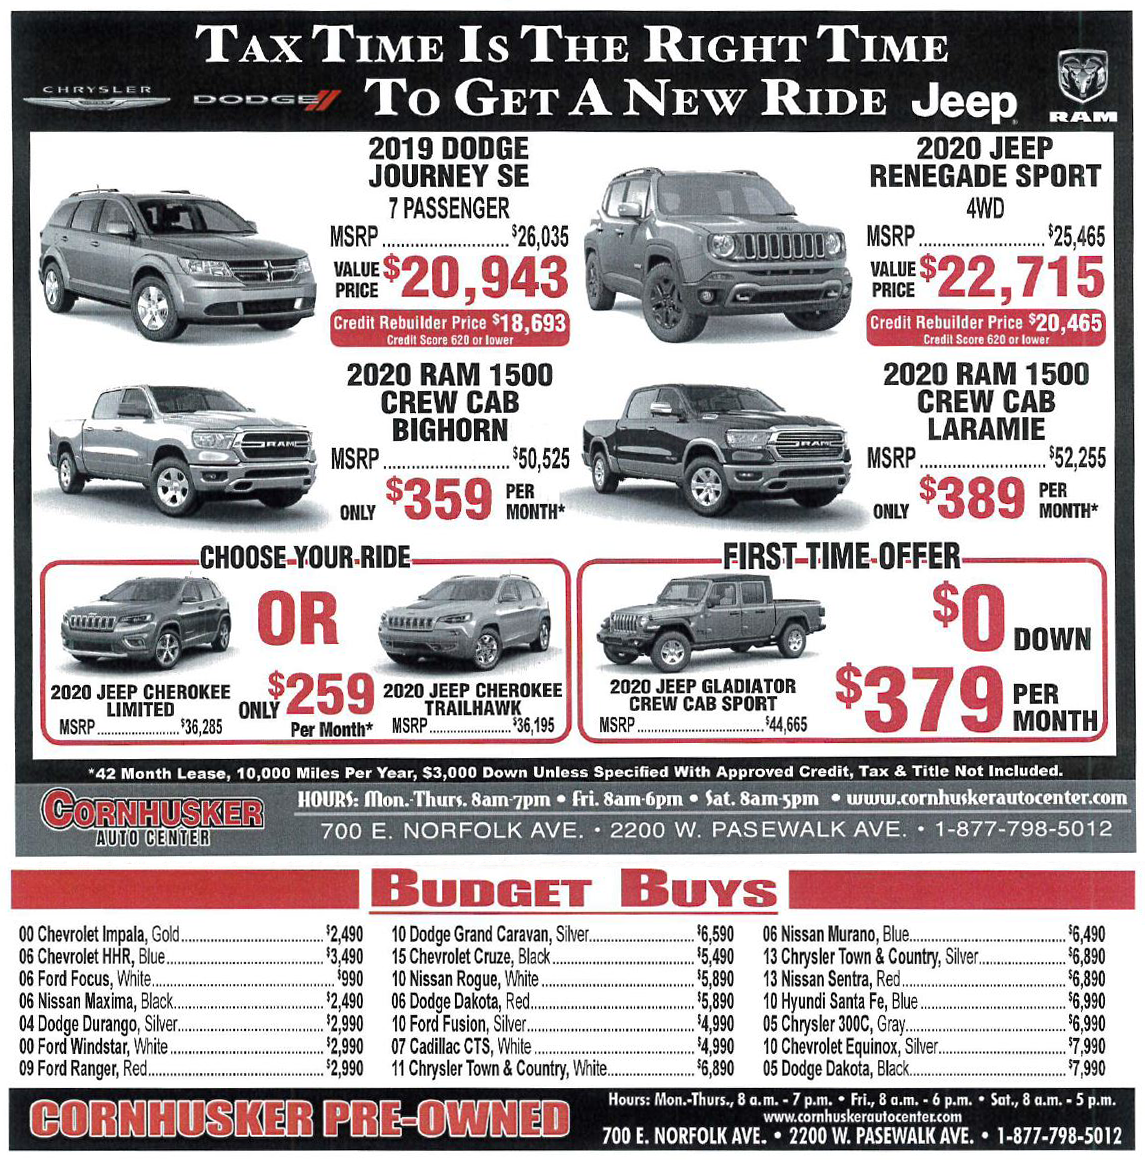 President's Day - Chrysler Dodge Jeep RAM specials